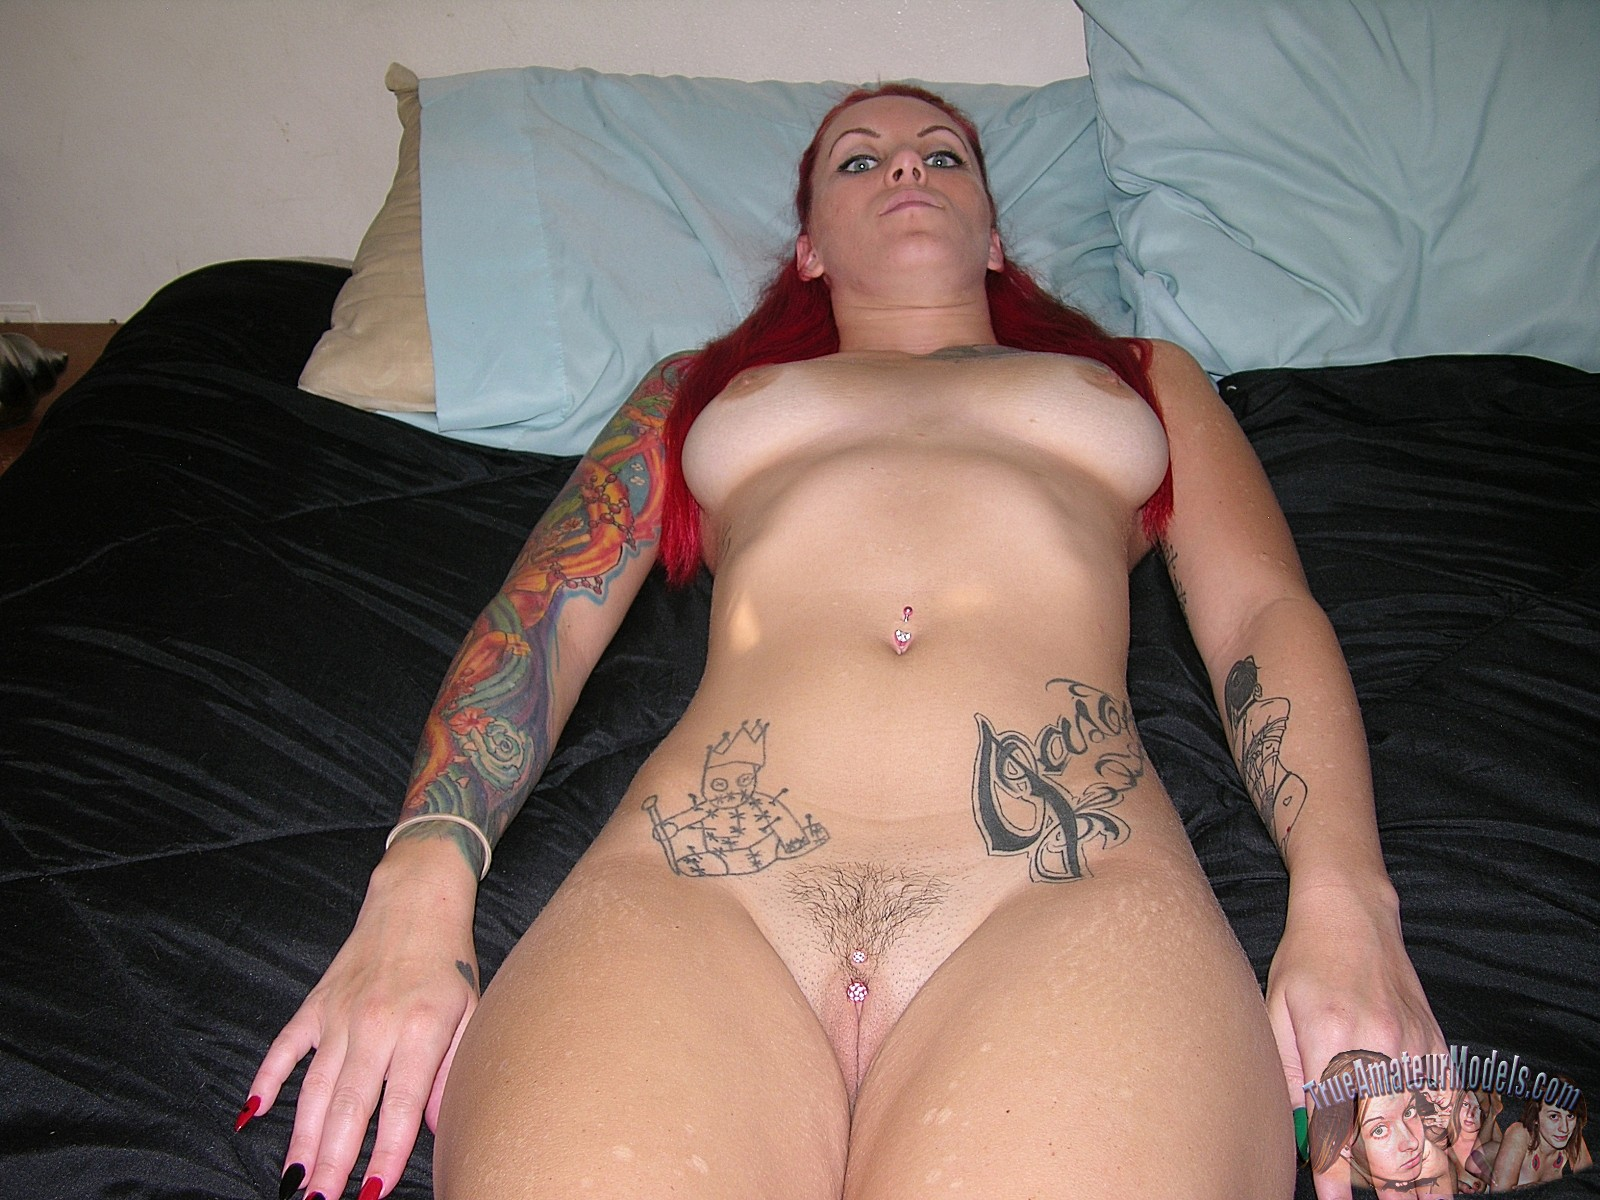 Remarkable, Nude women tatoo redhead agree, your